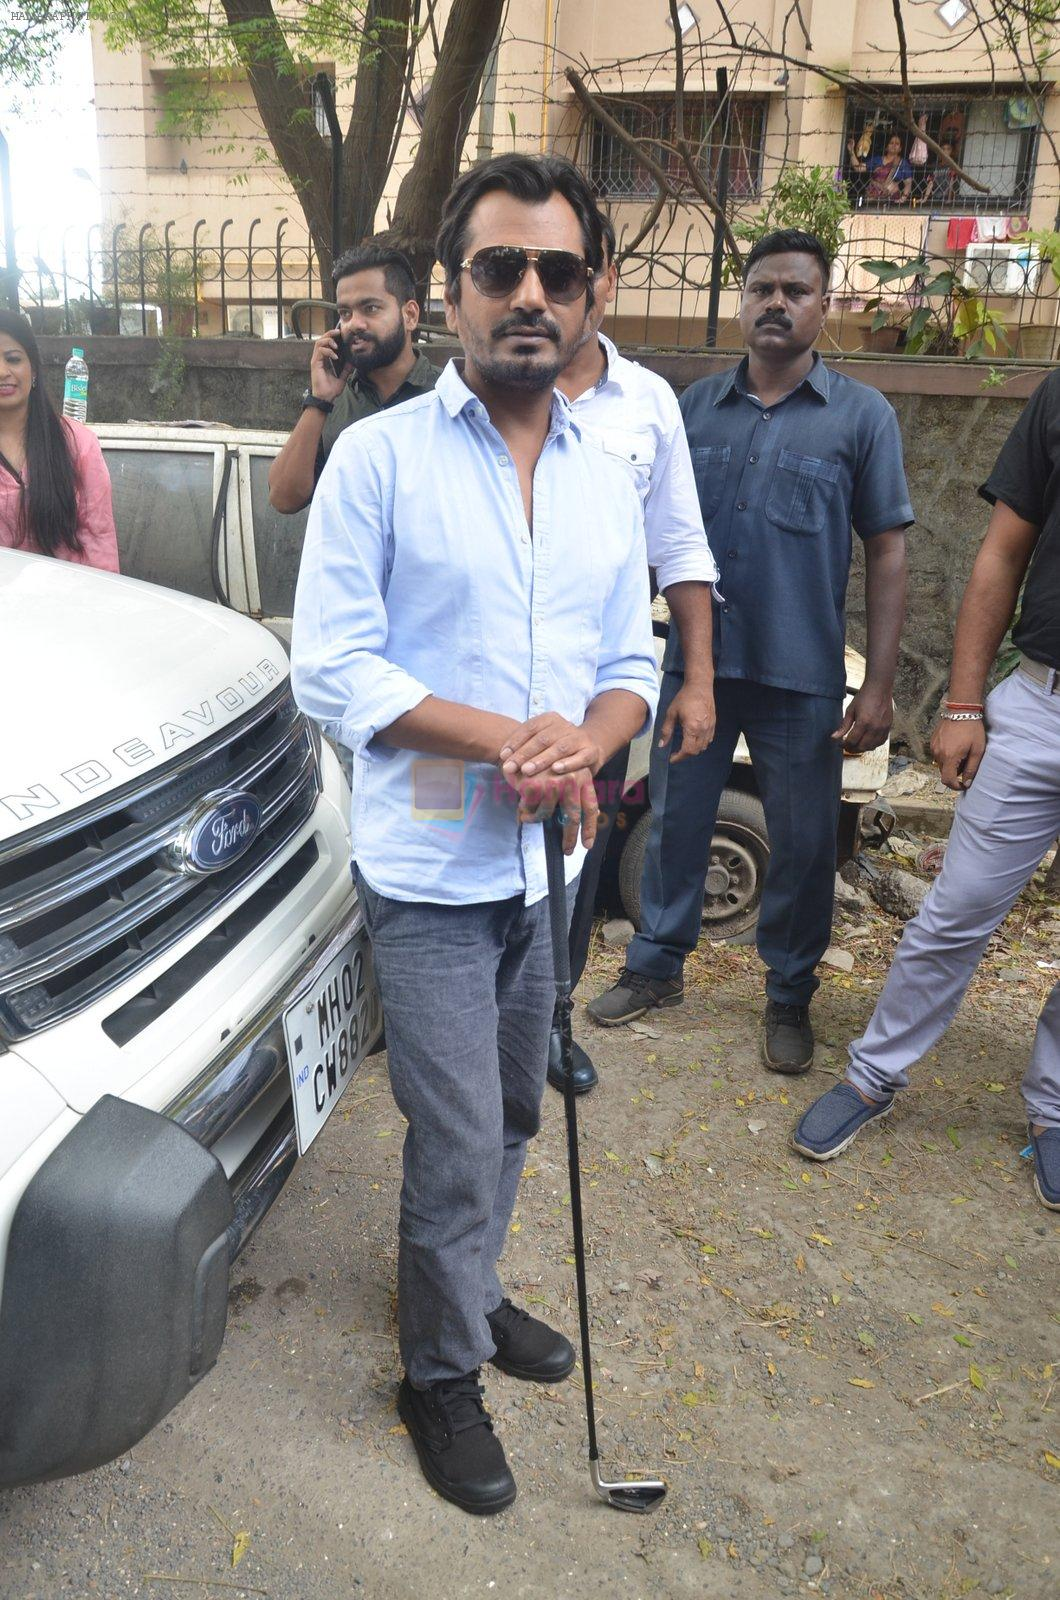 Nawazuddin Siddiqui promote their forthcoming film Freaky Ali by playing golf on the streets of Mumbai on 7th Sept 2016